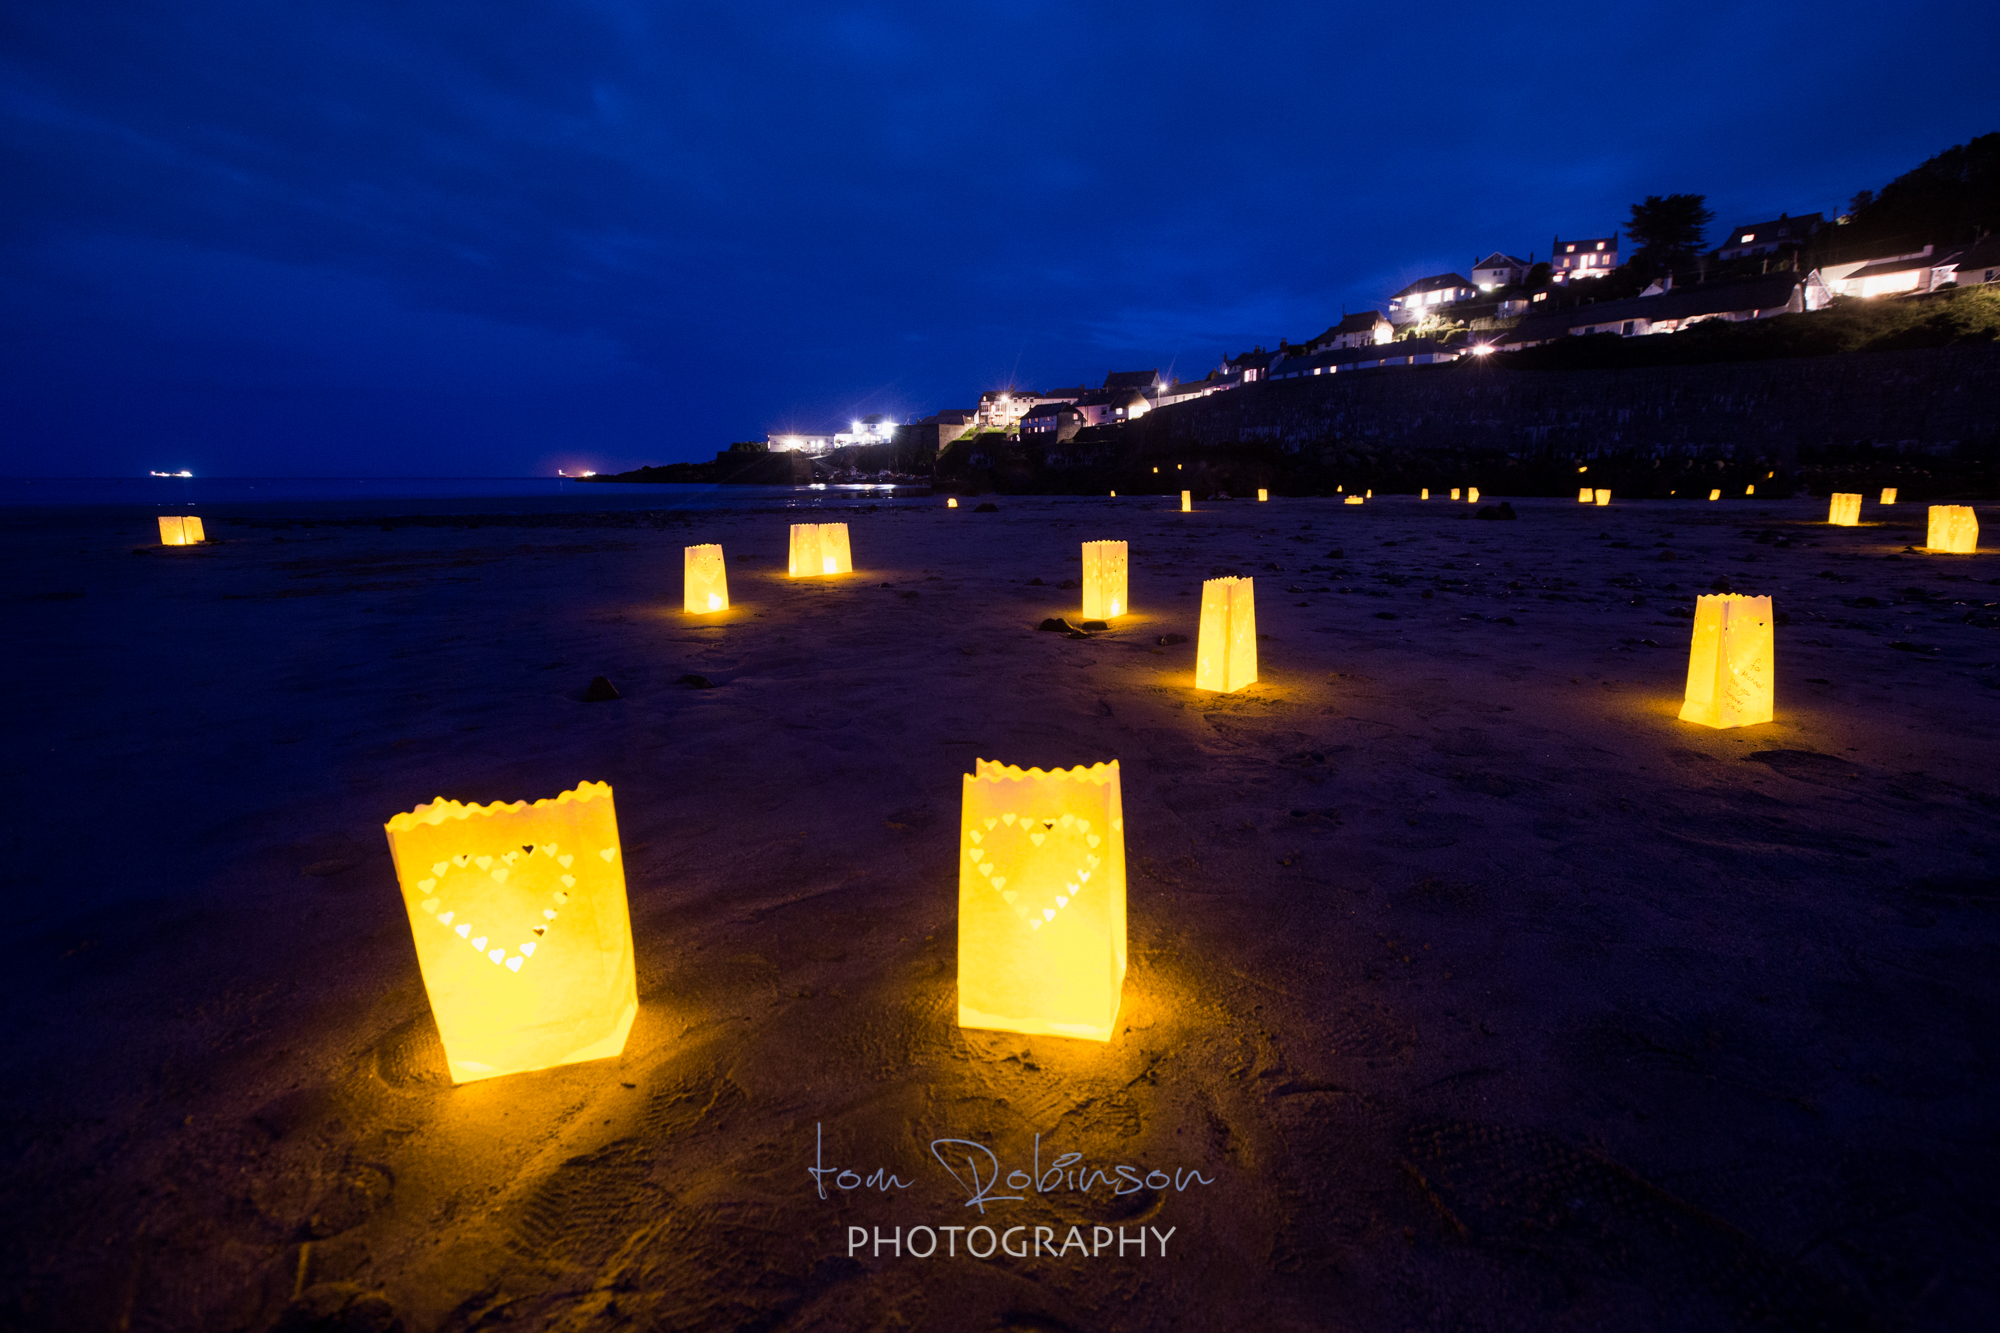 Coverack by night from the Cornwall by night collection by Tom Robinson Photography